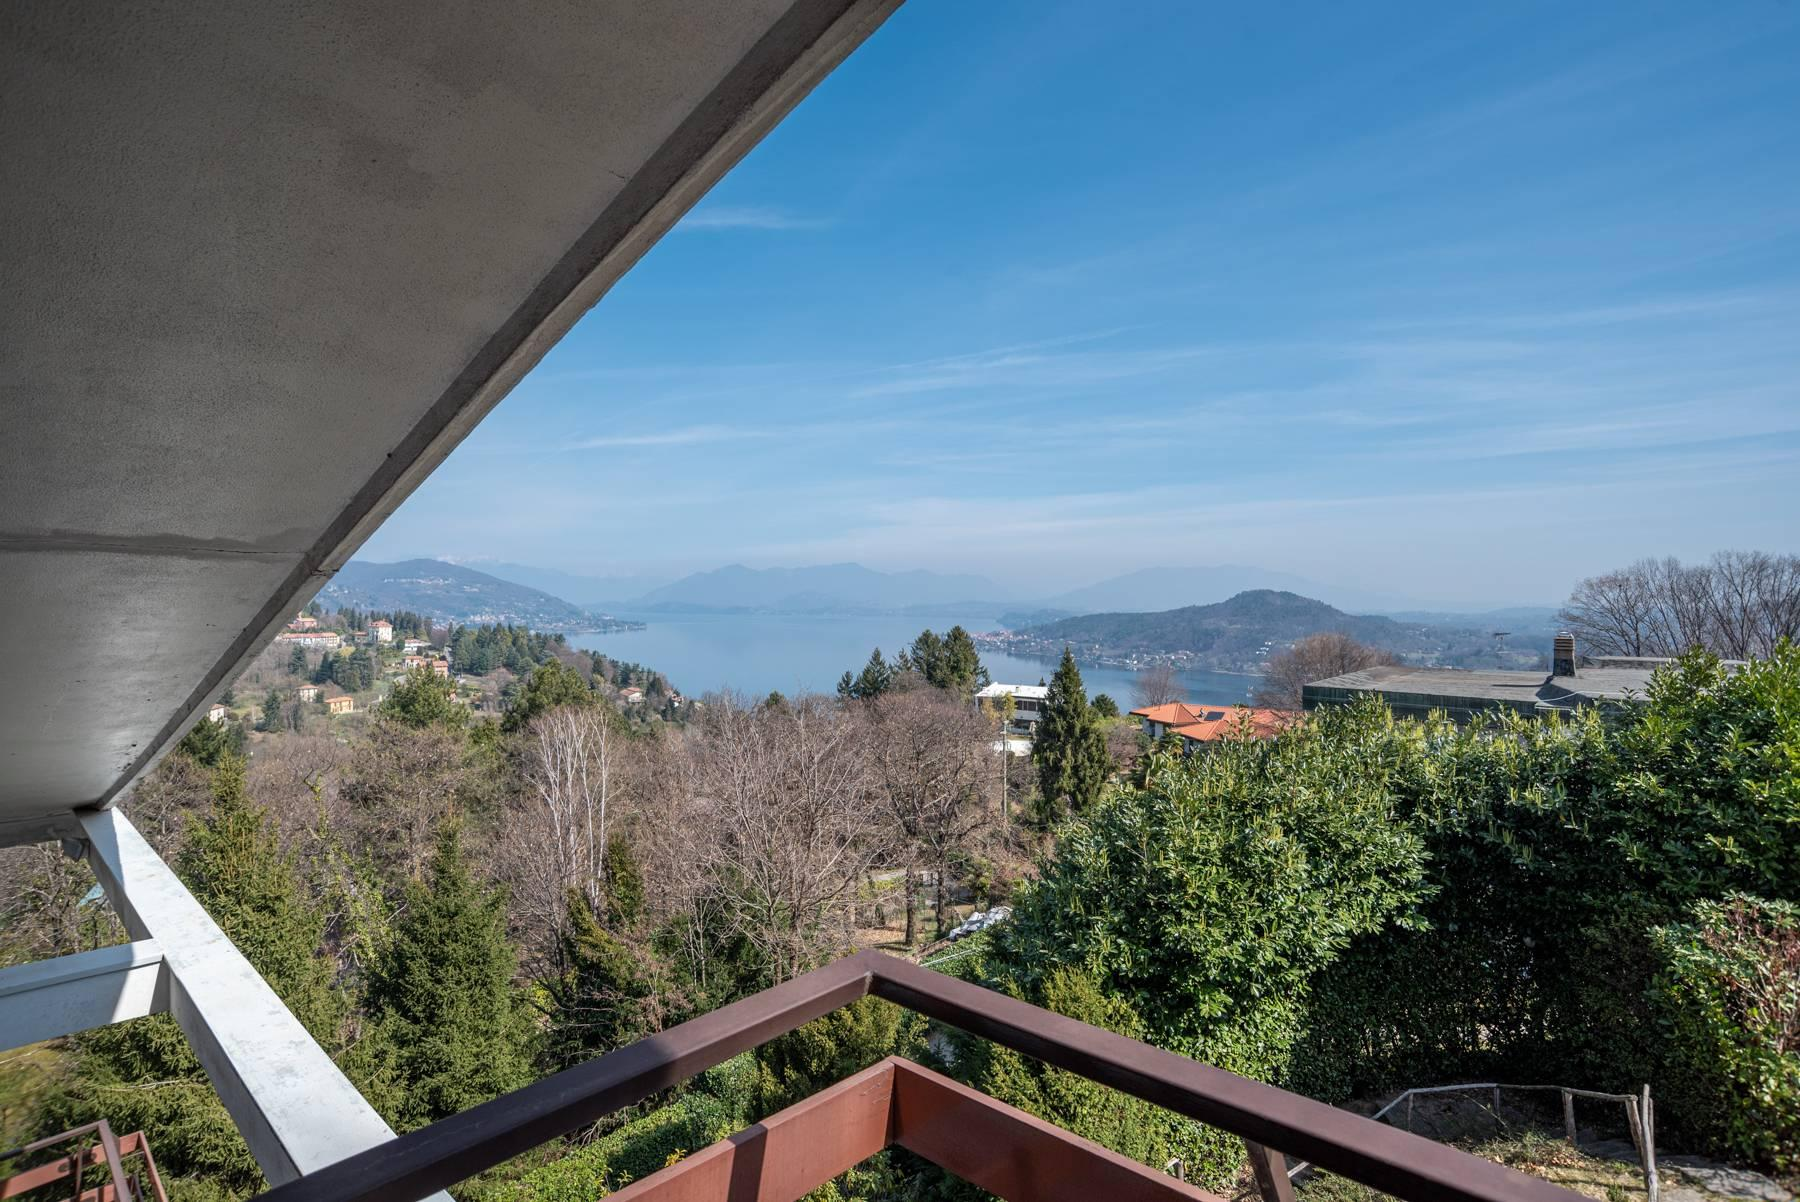 Villa on the hills of Arona overlooking the lake - 4